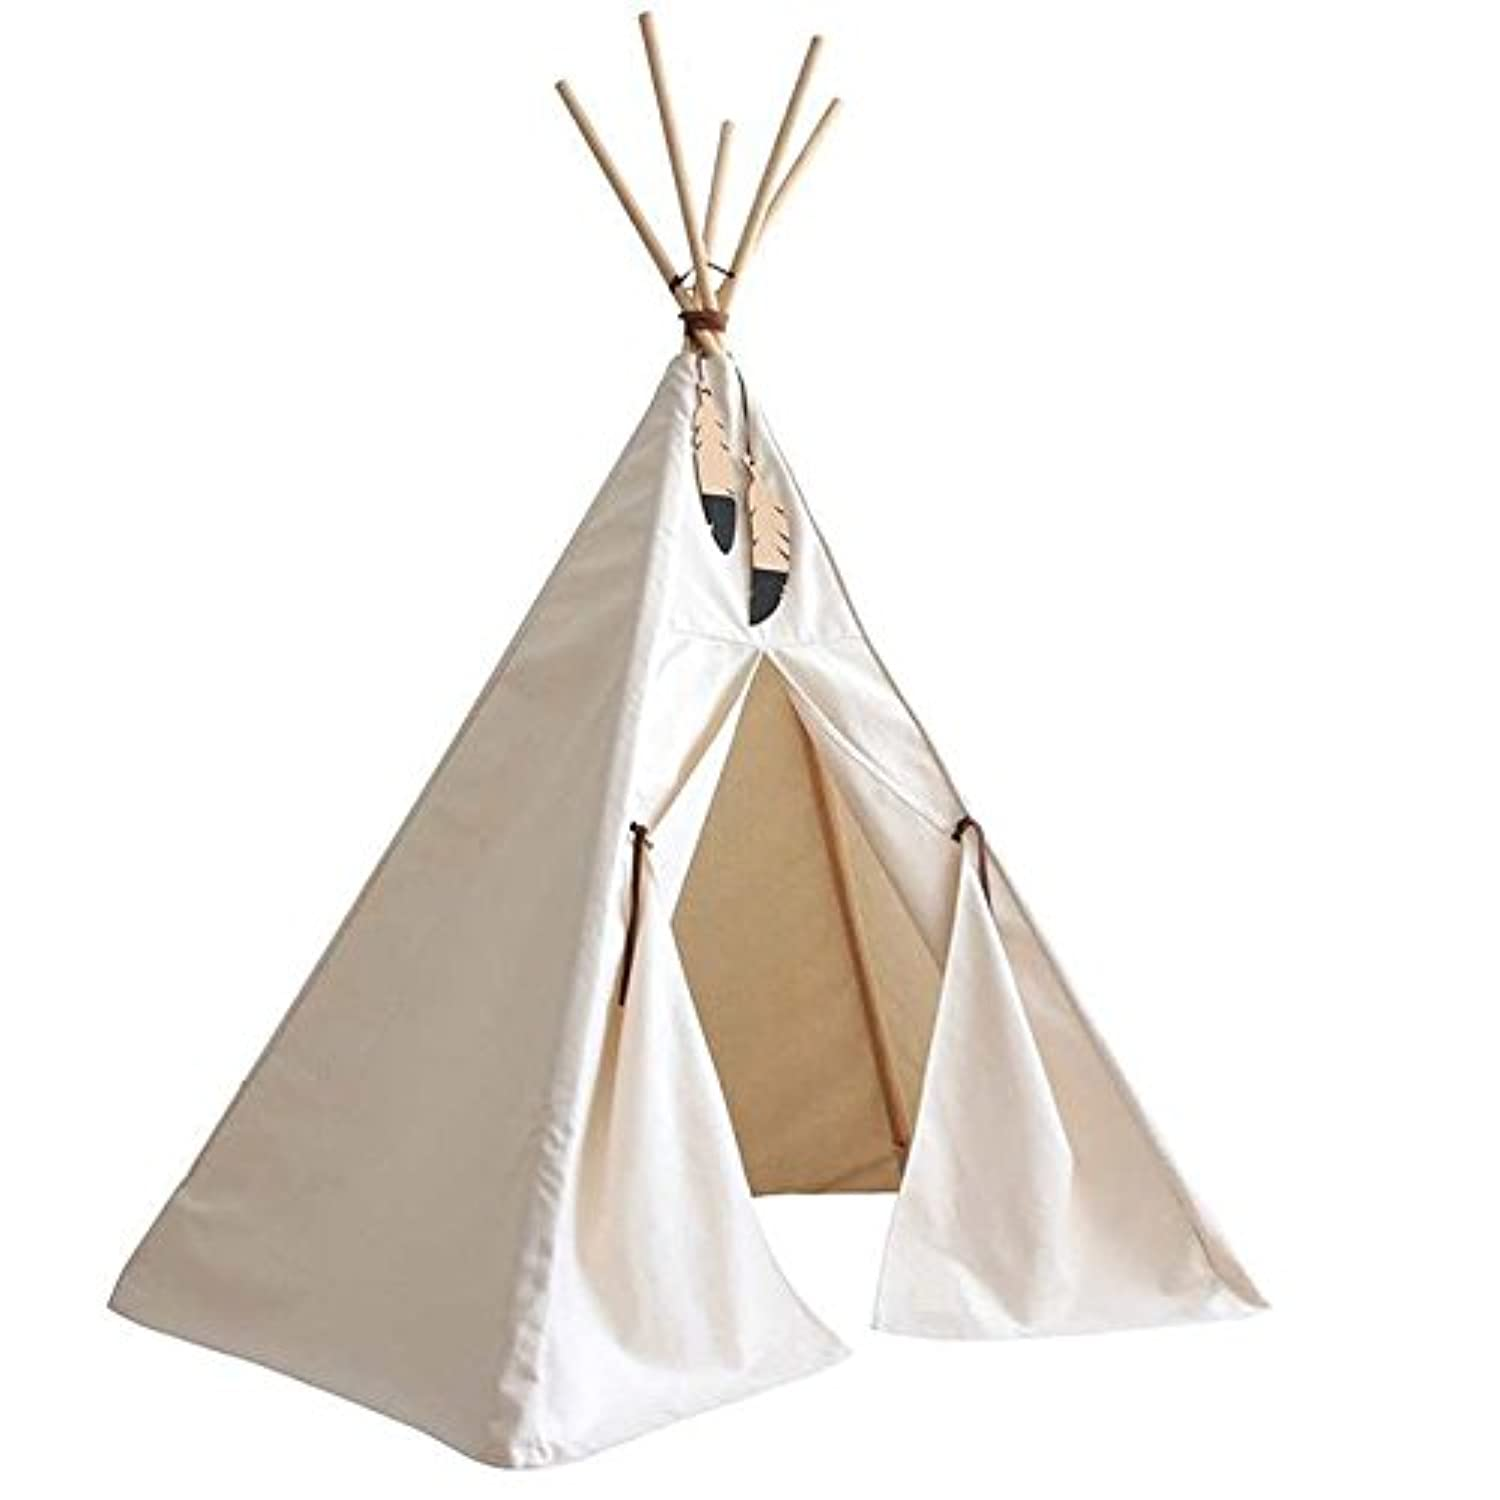 bibelot and co Tipi Enfant - Tente tipi Indien Ningbo Bey Dev Ltd ... a97343b3a3f5